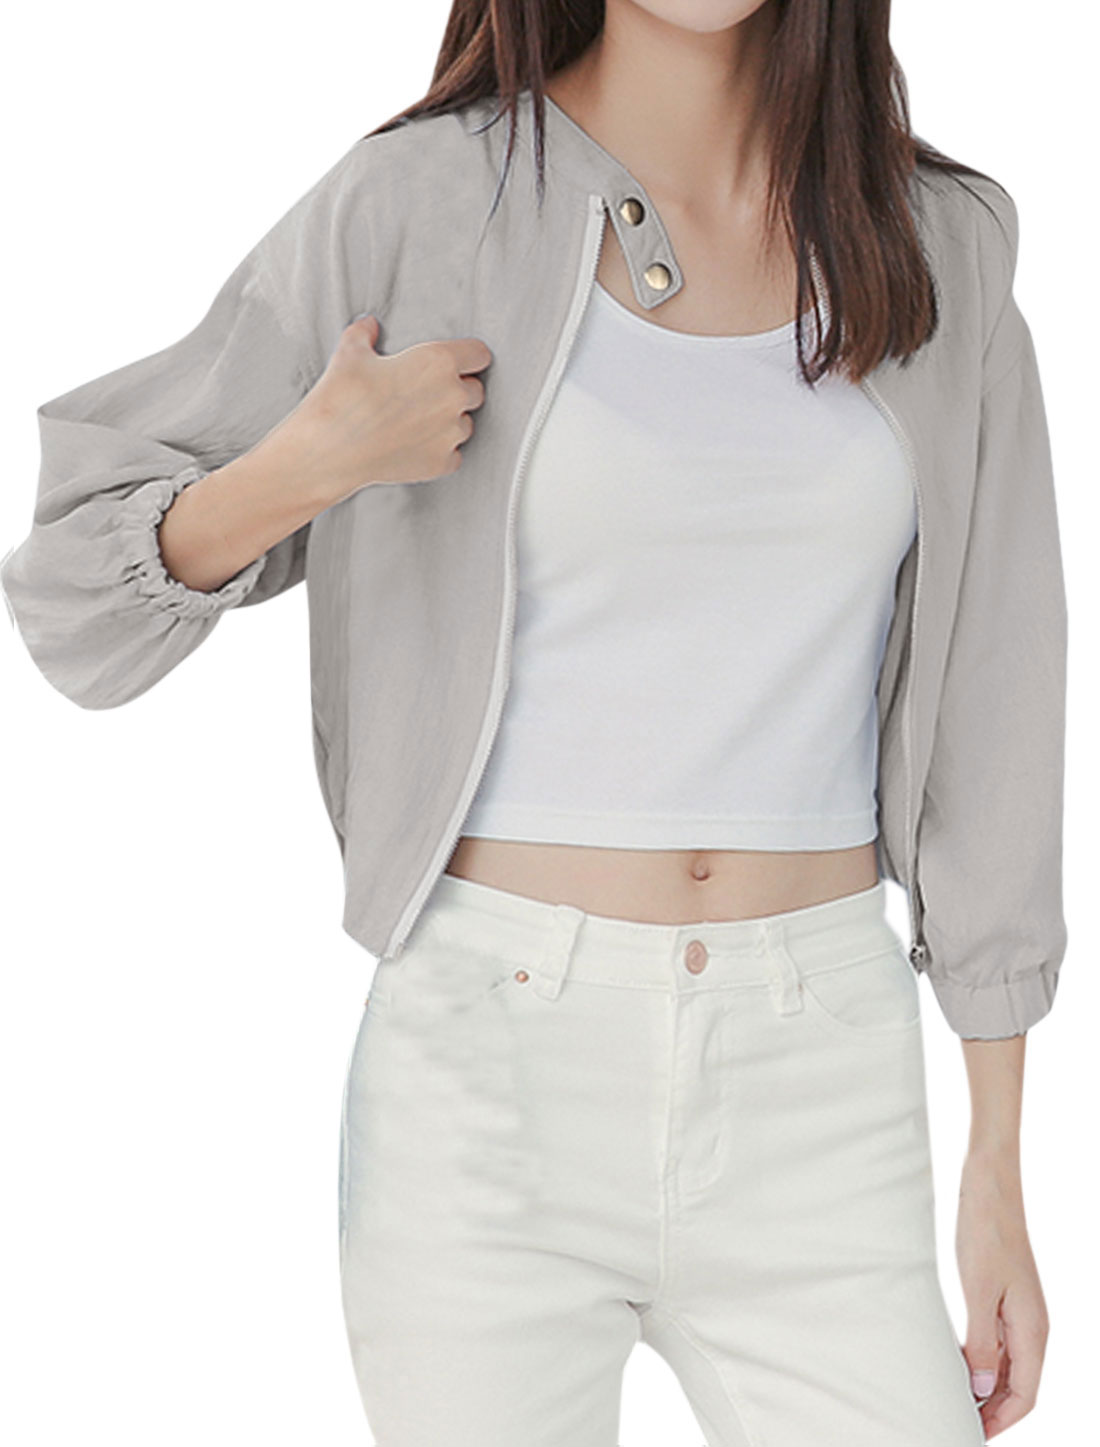 Women Stand Collar Zip Up Dolman Sleeve Basic Jacket Light Gray XS